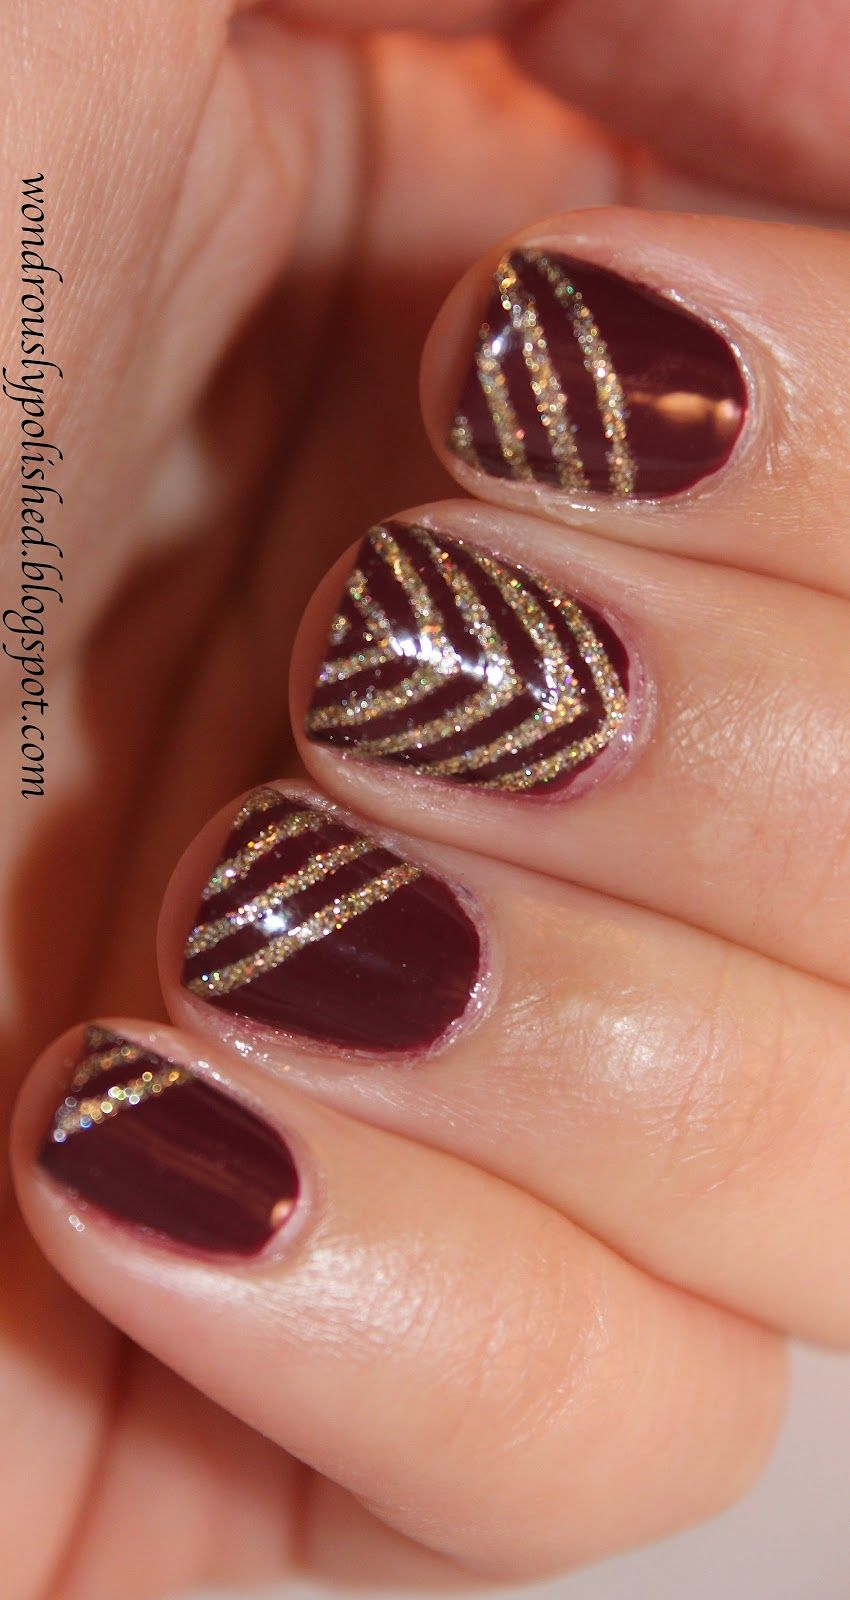 New Year's Nails 2016. Merlot Gel Manicure. Gold Sparkly